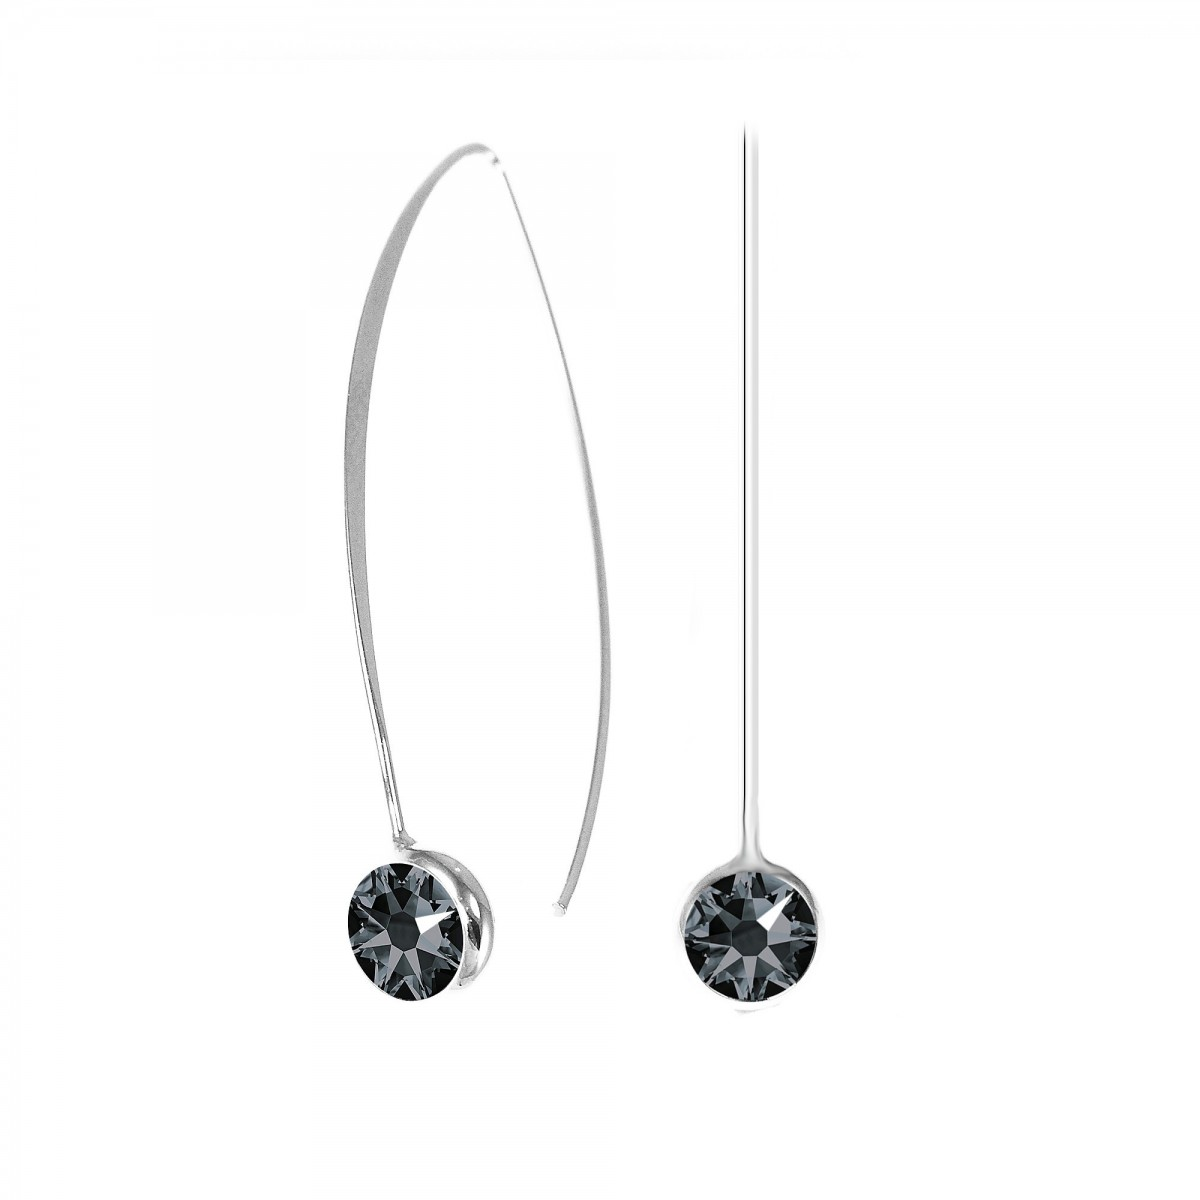 boucles d 39 oreilles point de lumi re noir so charm made with crystal from swarovski so charm. Black Bedroom Furniture Sets. Home Design Ideas